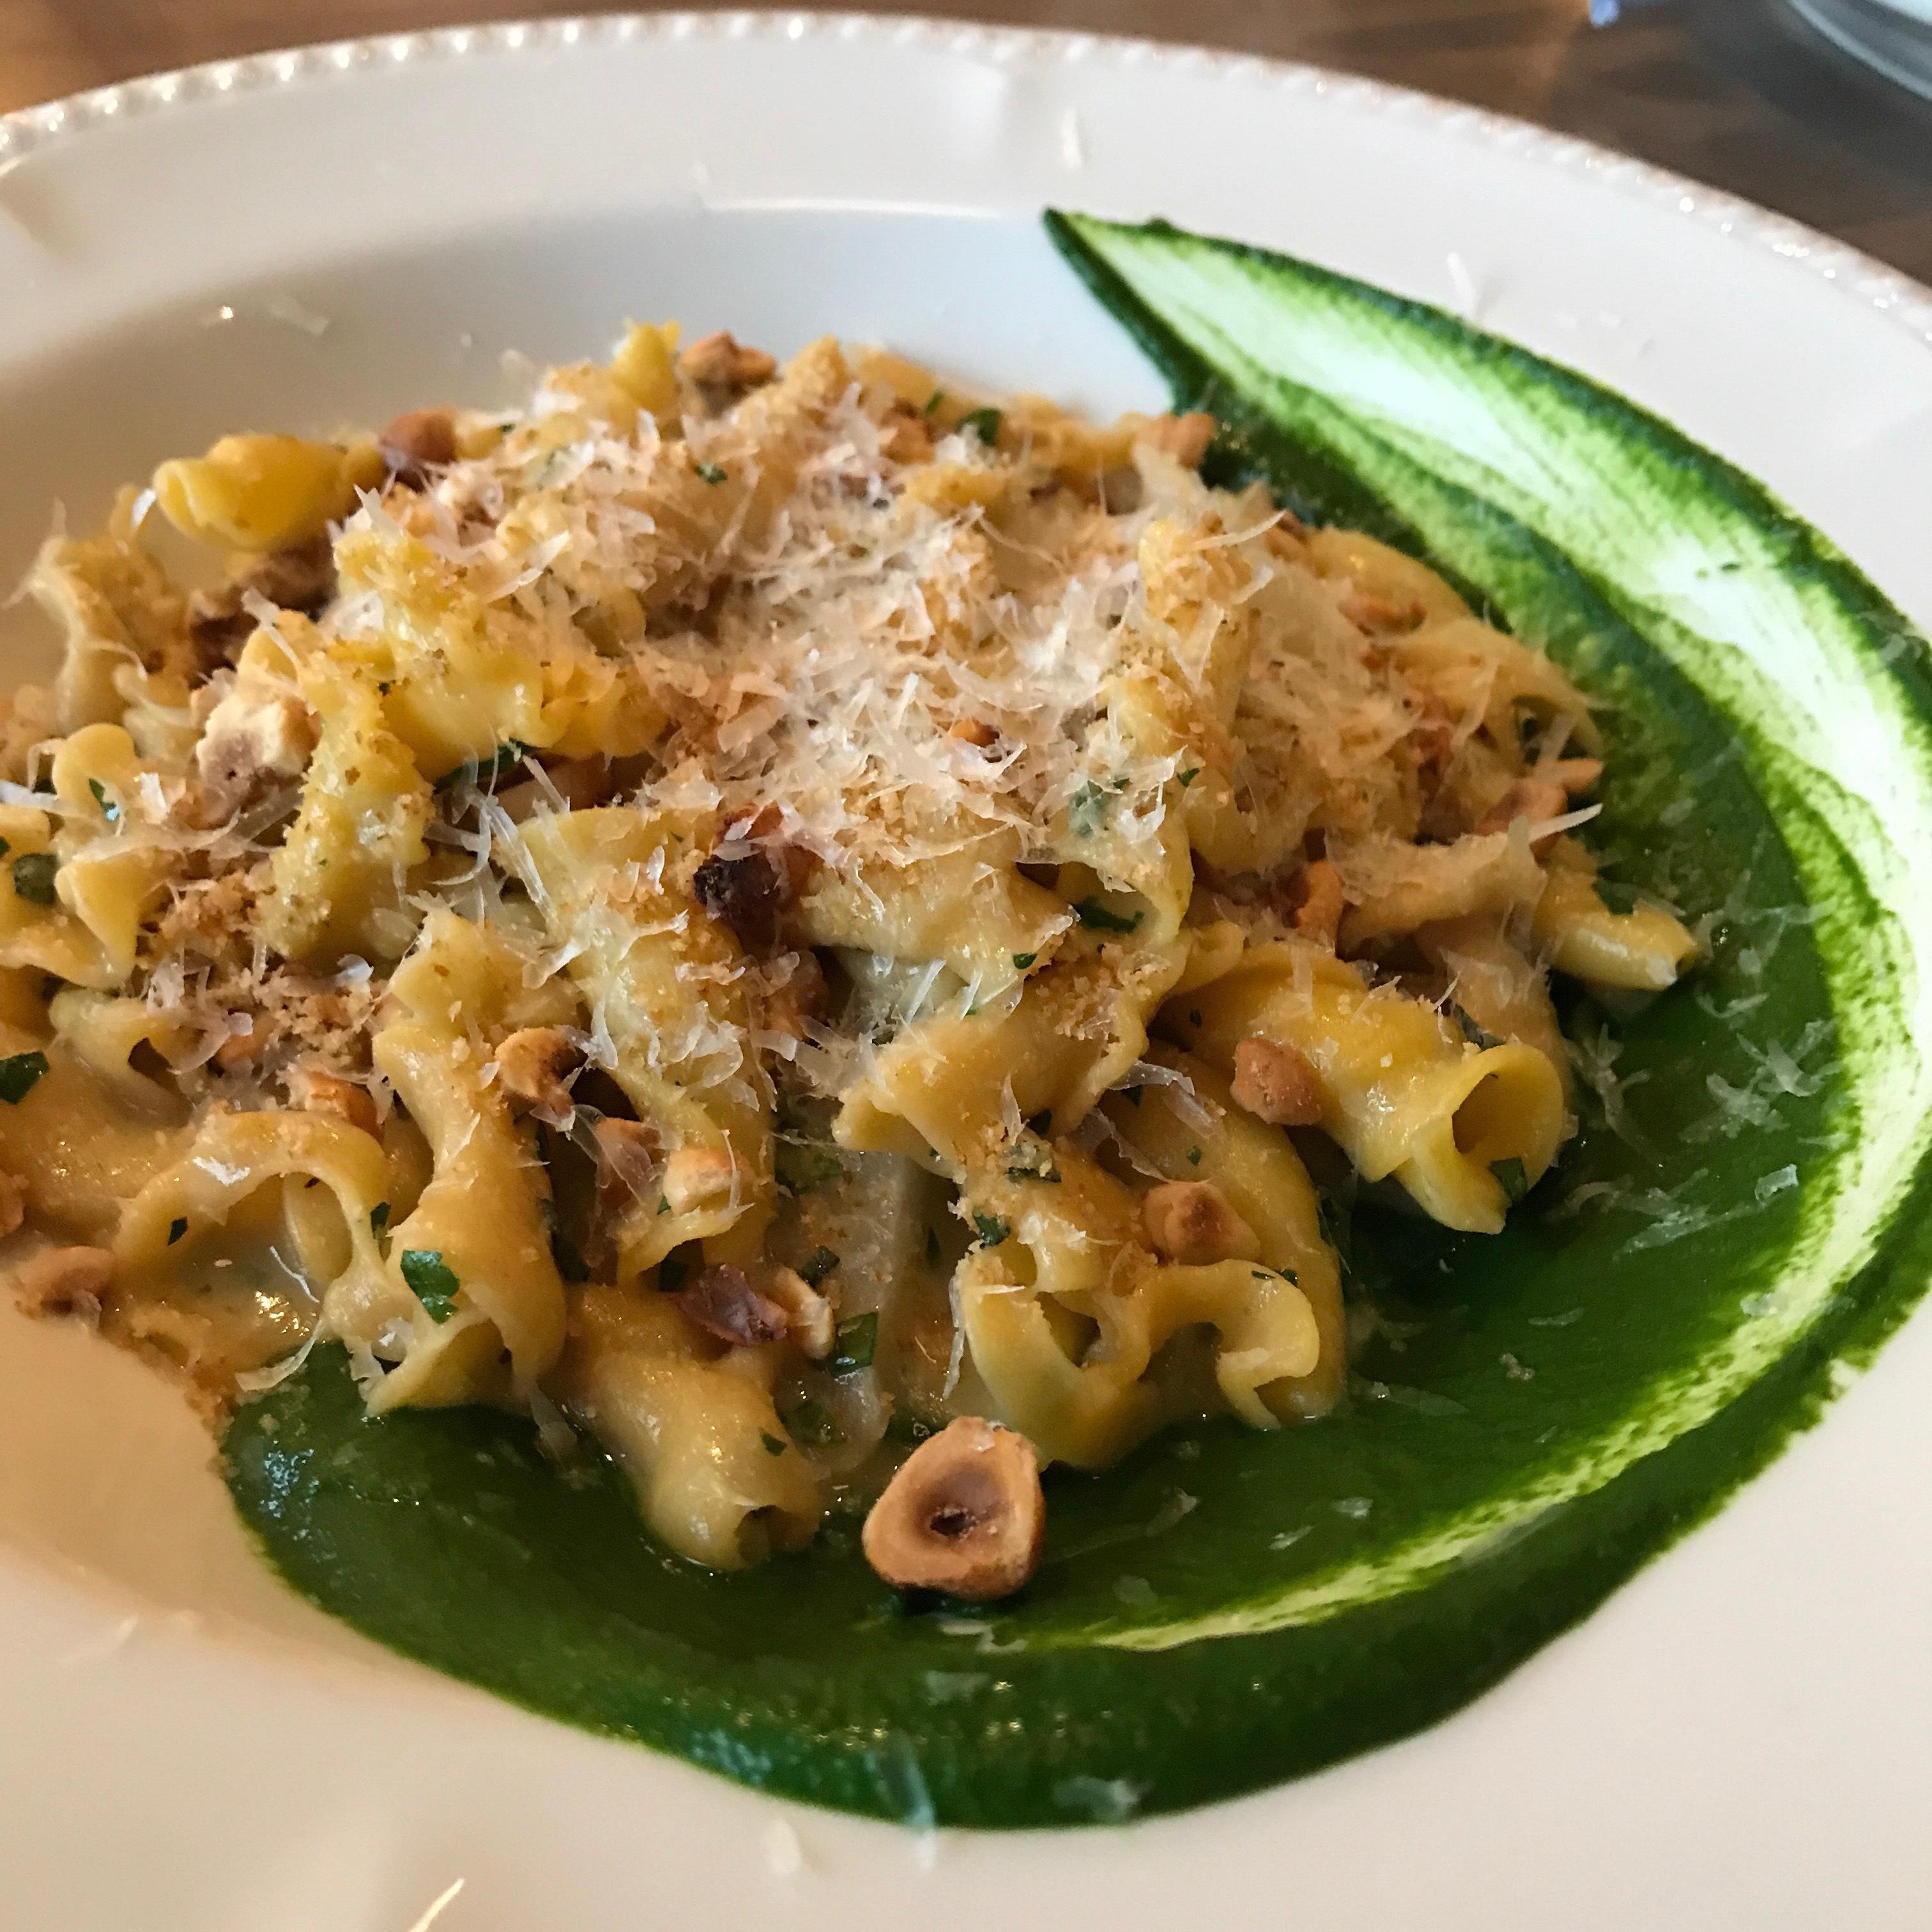 Executive Chef Kyle Bailey has also added several new dishes to his spring menu, such as the sweet potato campanelle with housemade ricotta, salsify, spinach, hazelnuts, and parm. (Image: Courtesy The Salt Line)